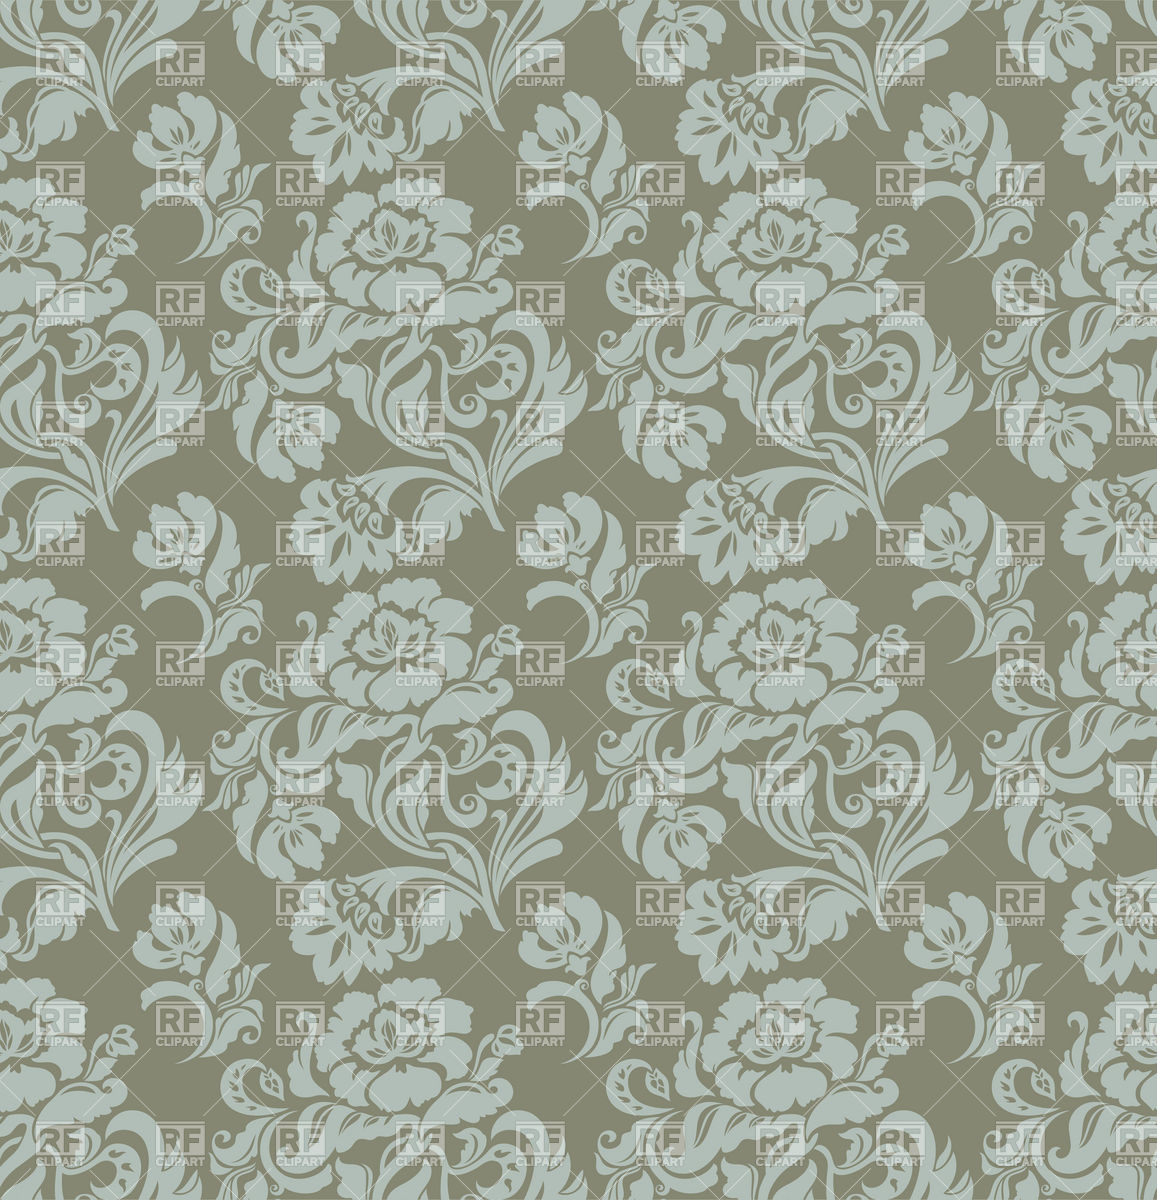 Free download Seamless gray floral victorian wallpaper.